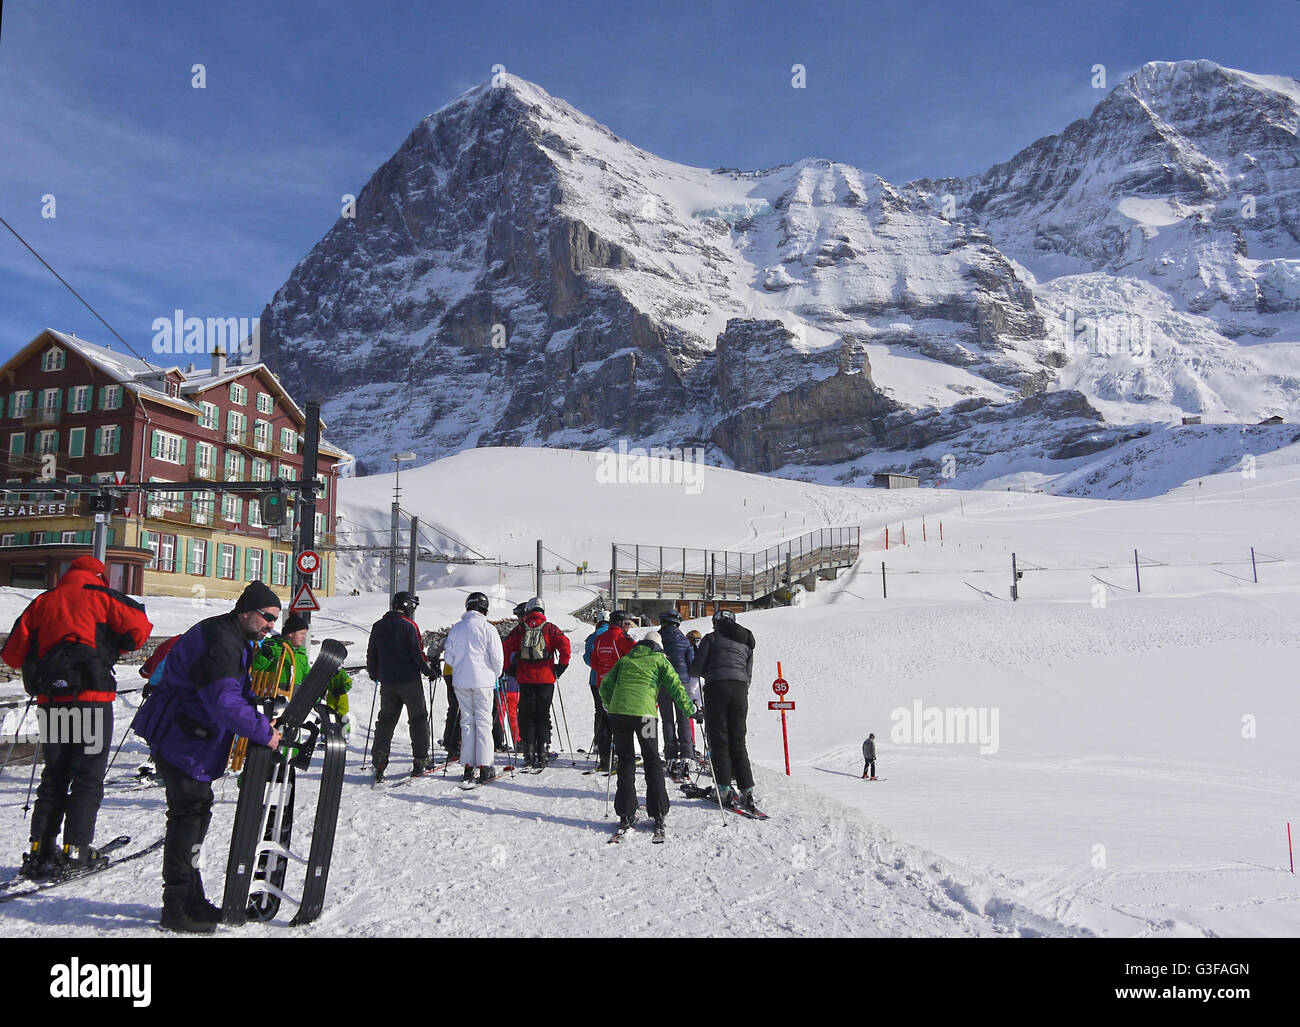 Skiers and snowboarders at Kleine Scheidegg station with the Eiger mountain behind - Stock Image